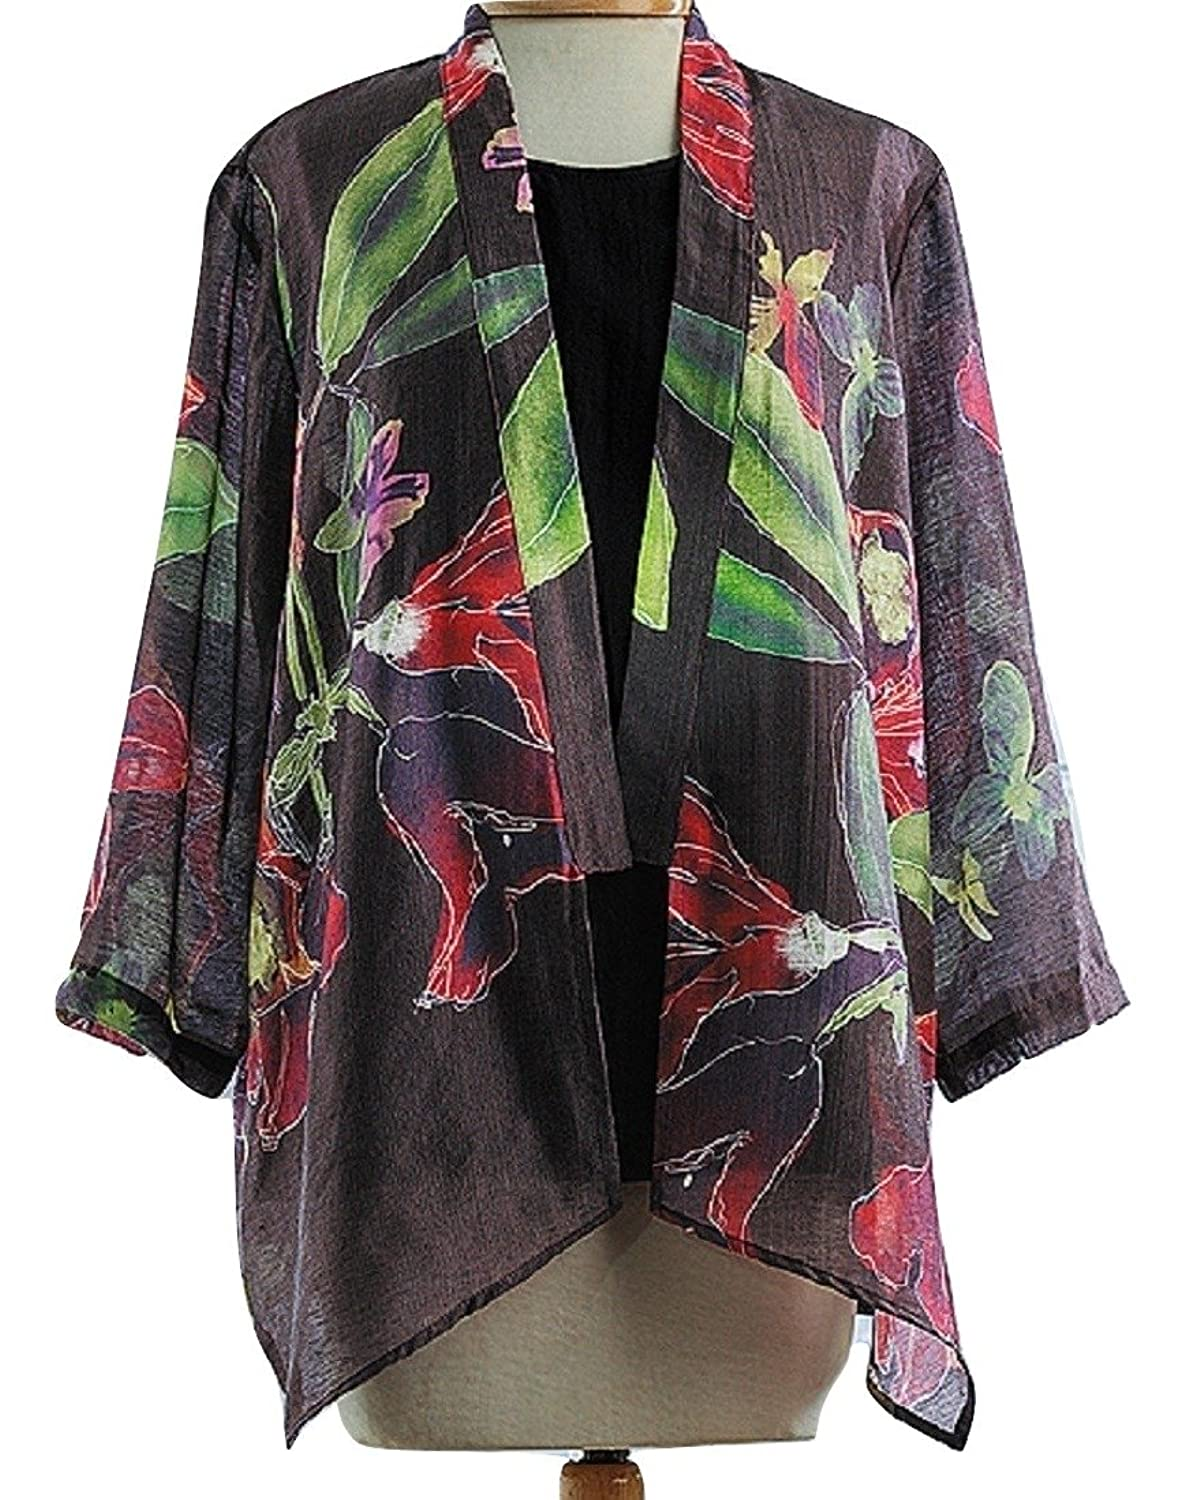 5e63e94be6a1 50%OFF Dressori Women's Watercolor Garden Jacket Large - seliba-sa ...